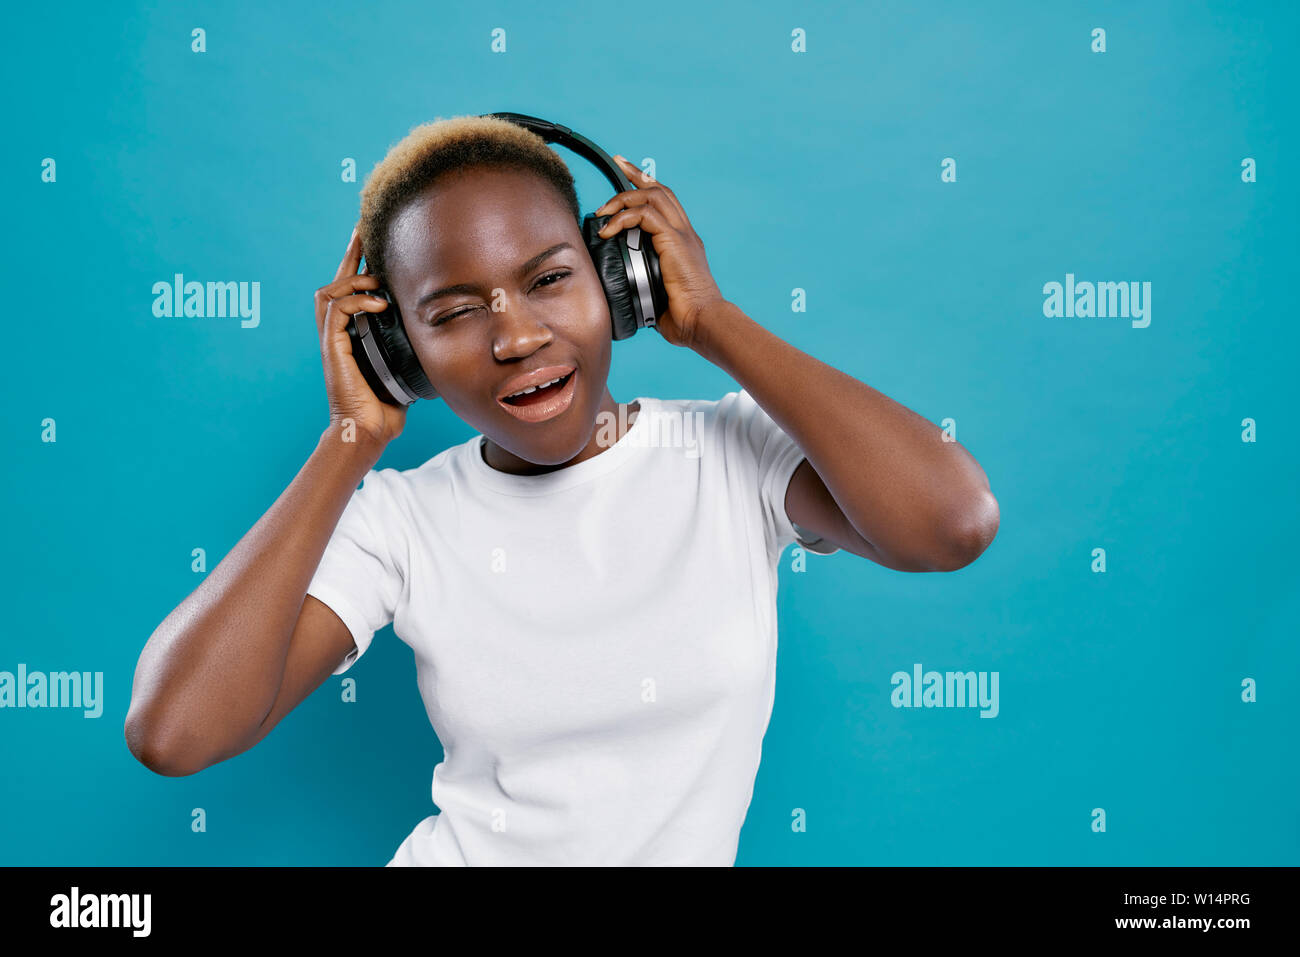 Bluetooth Headphones High Resolution Stock Photography And Images Alamy